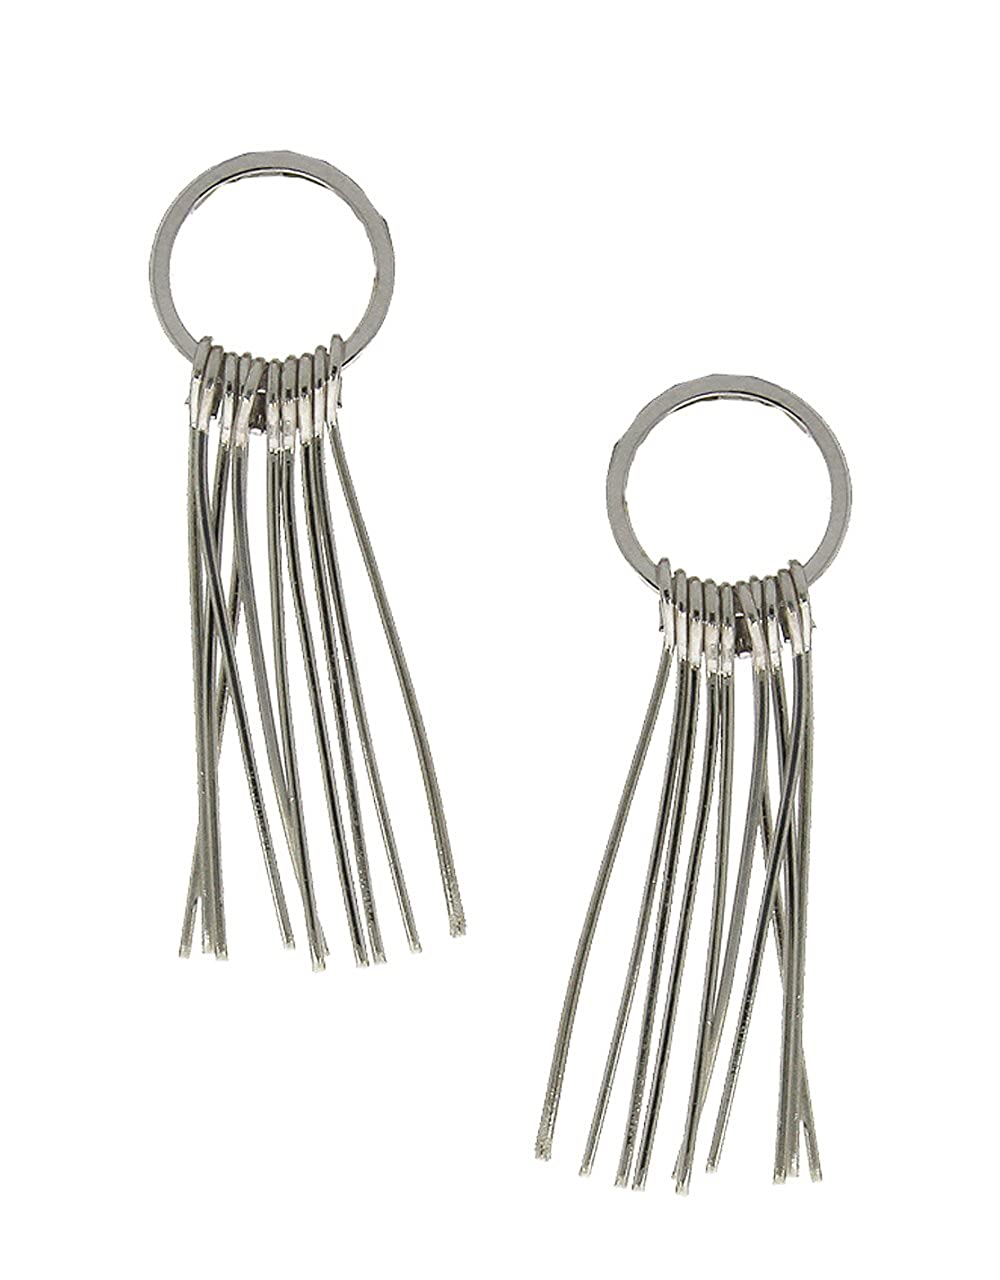 Anuradha Art Silver Finish Styled With Metal String Different Styled Designer Long Earrings For Women//Girls